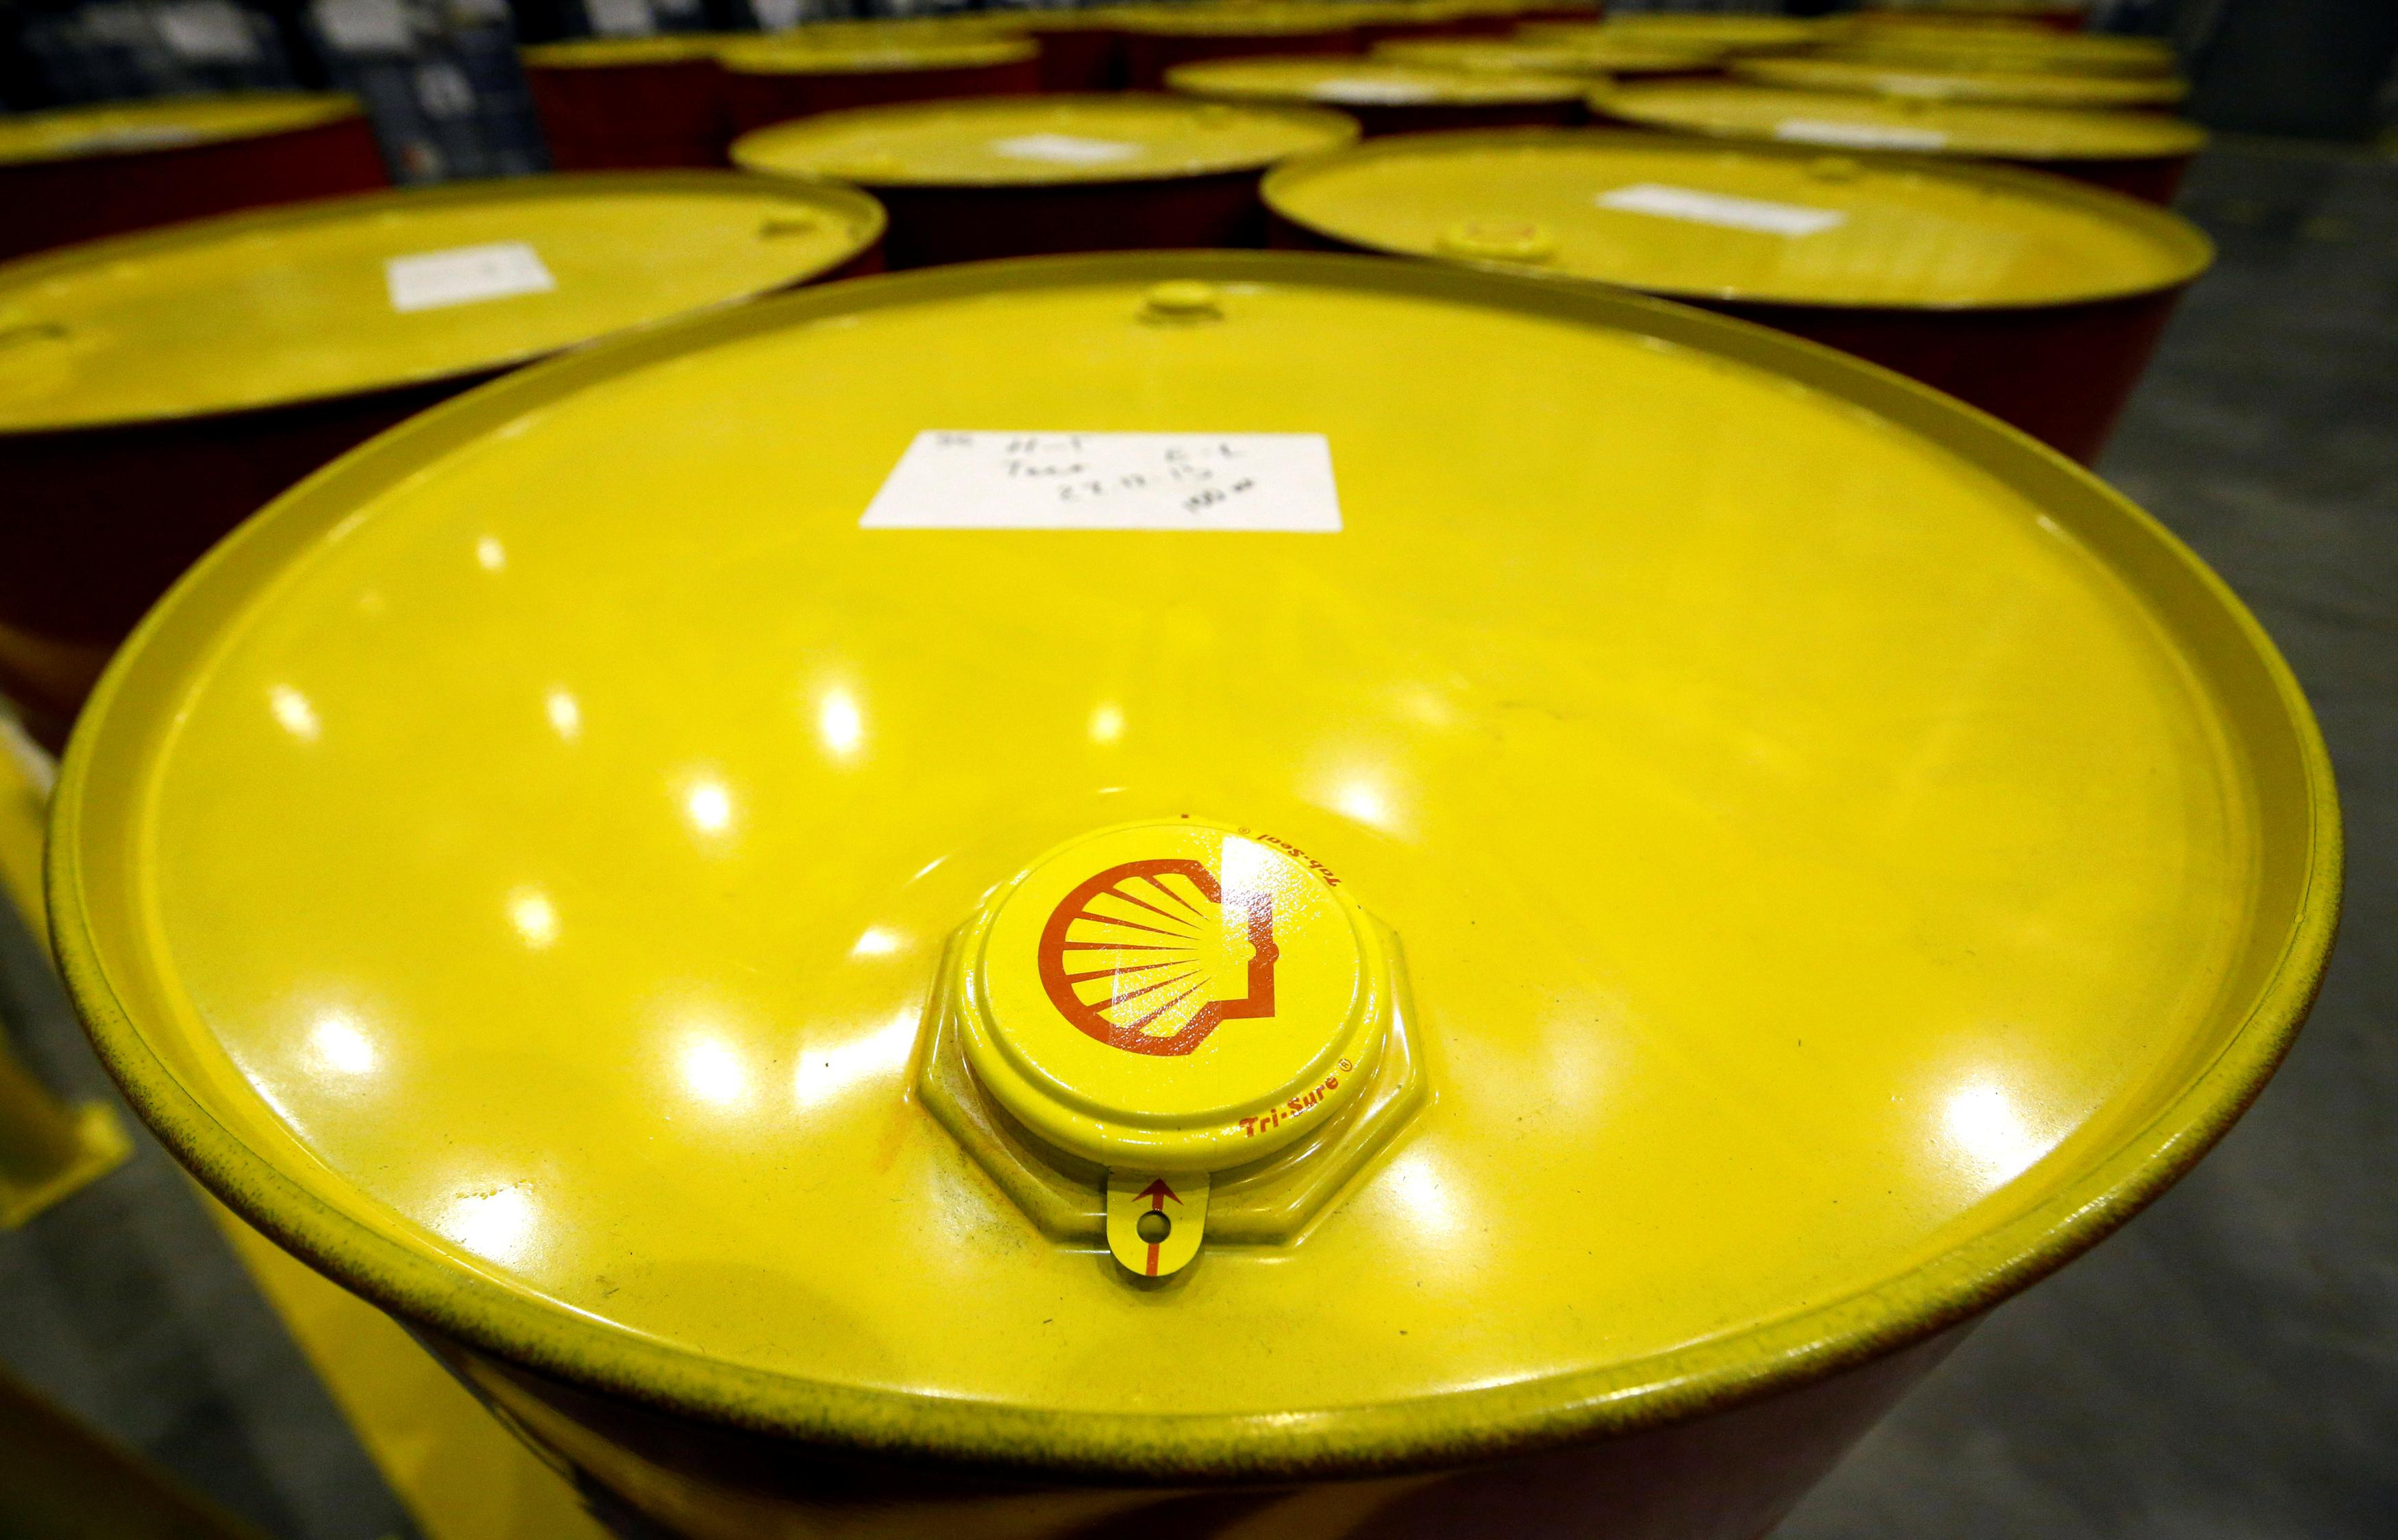 Exclusive: Royal Dutch Shell seeking buyer for Anacortes,...